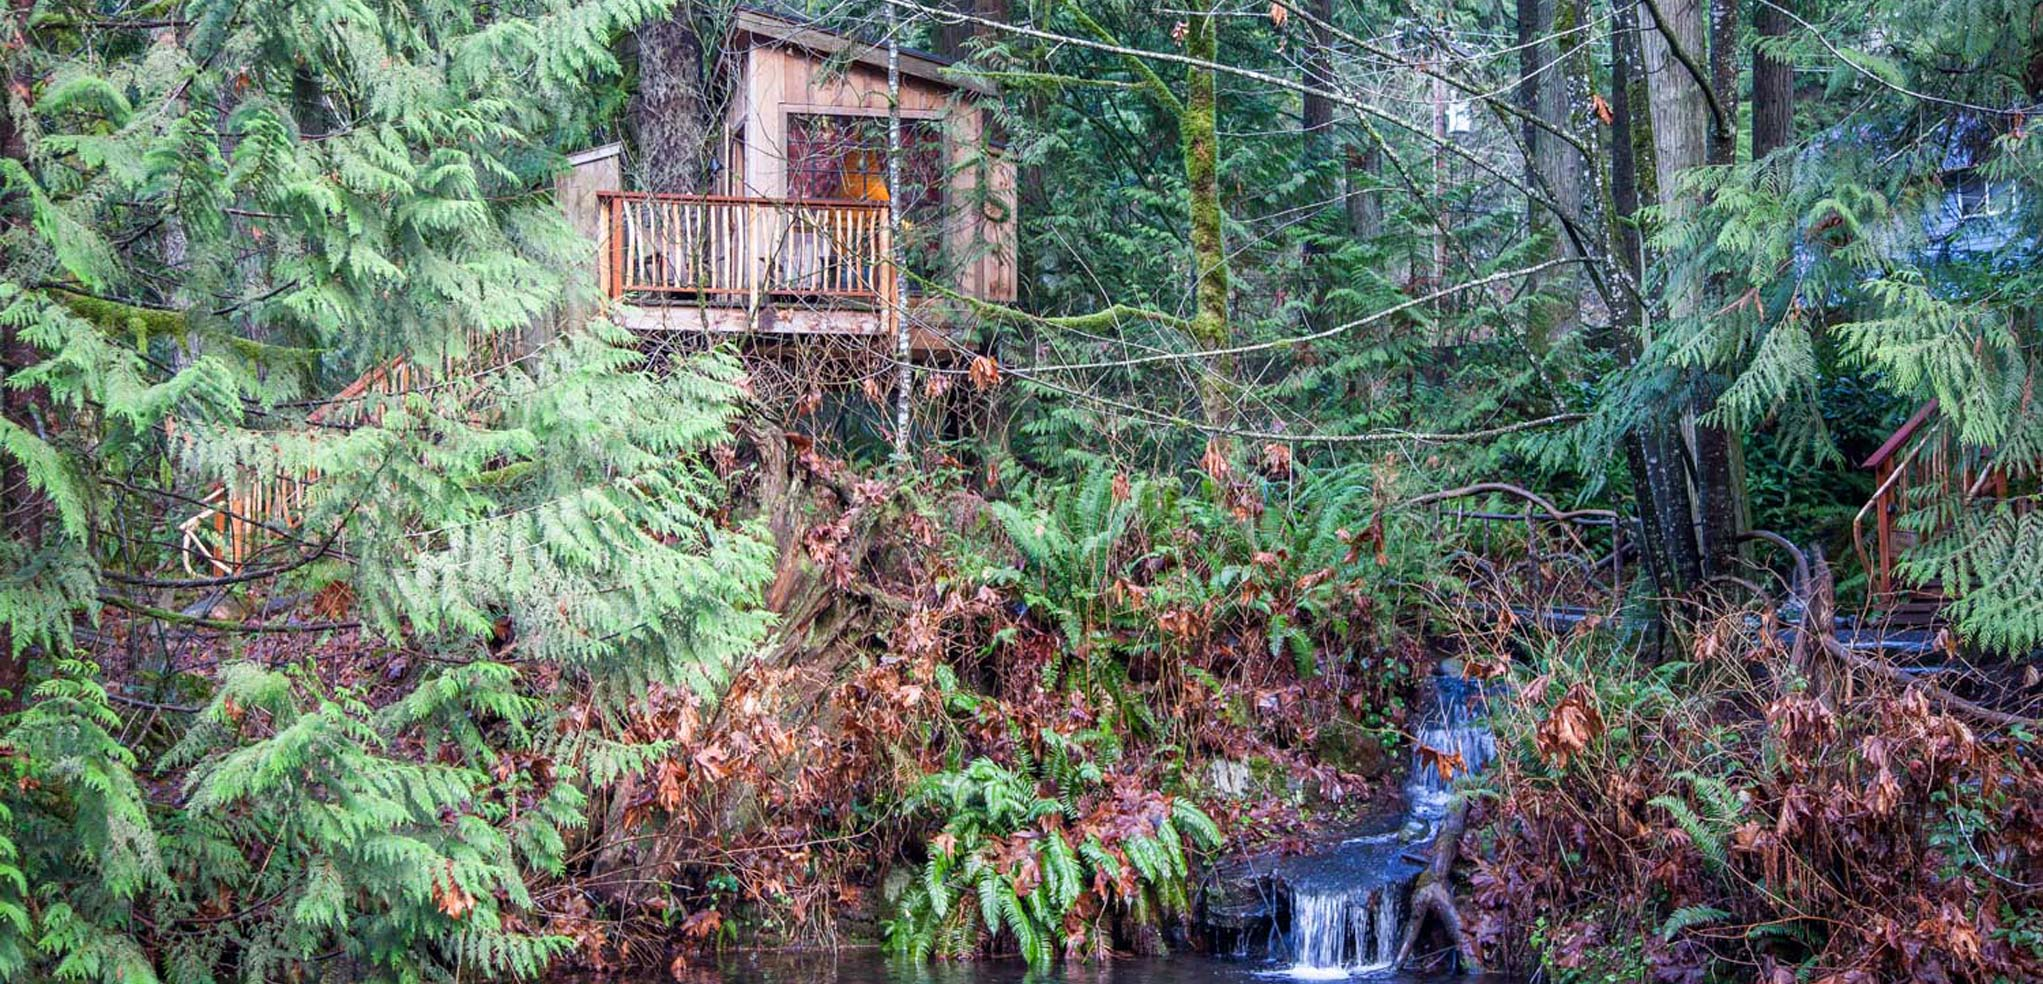 TreeHouse Photos at Treehouse Point in Fall City Washington